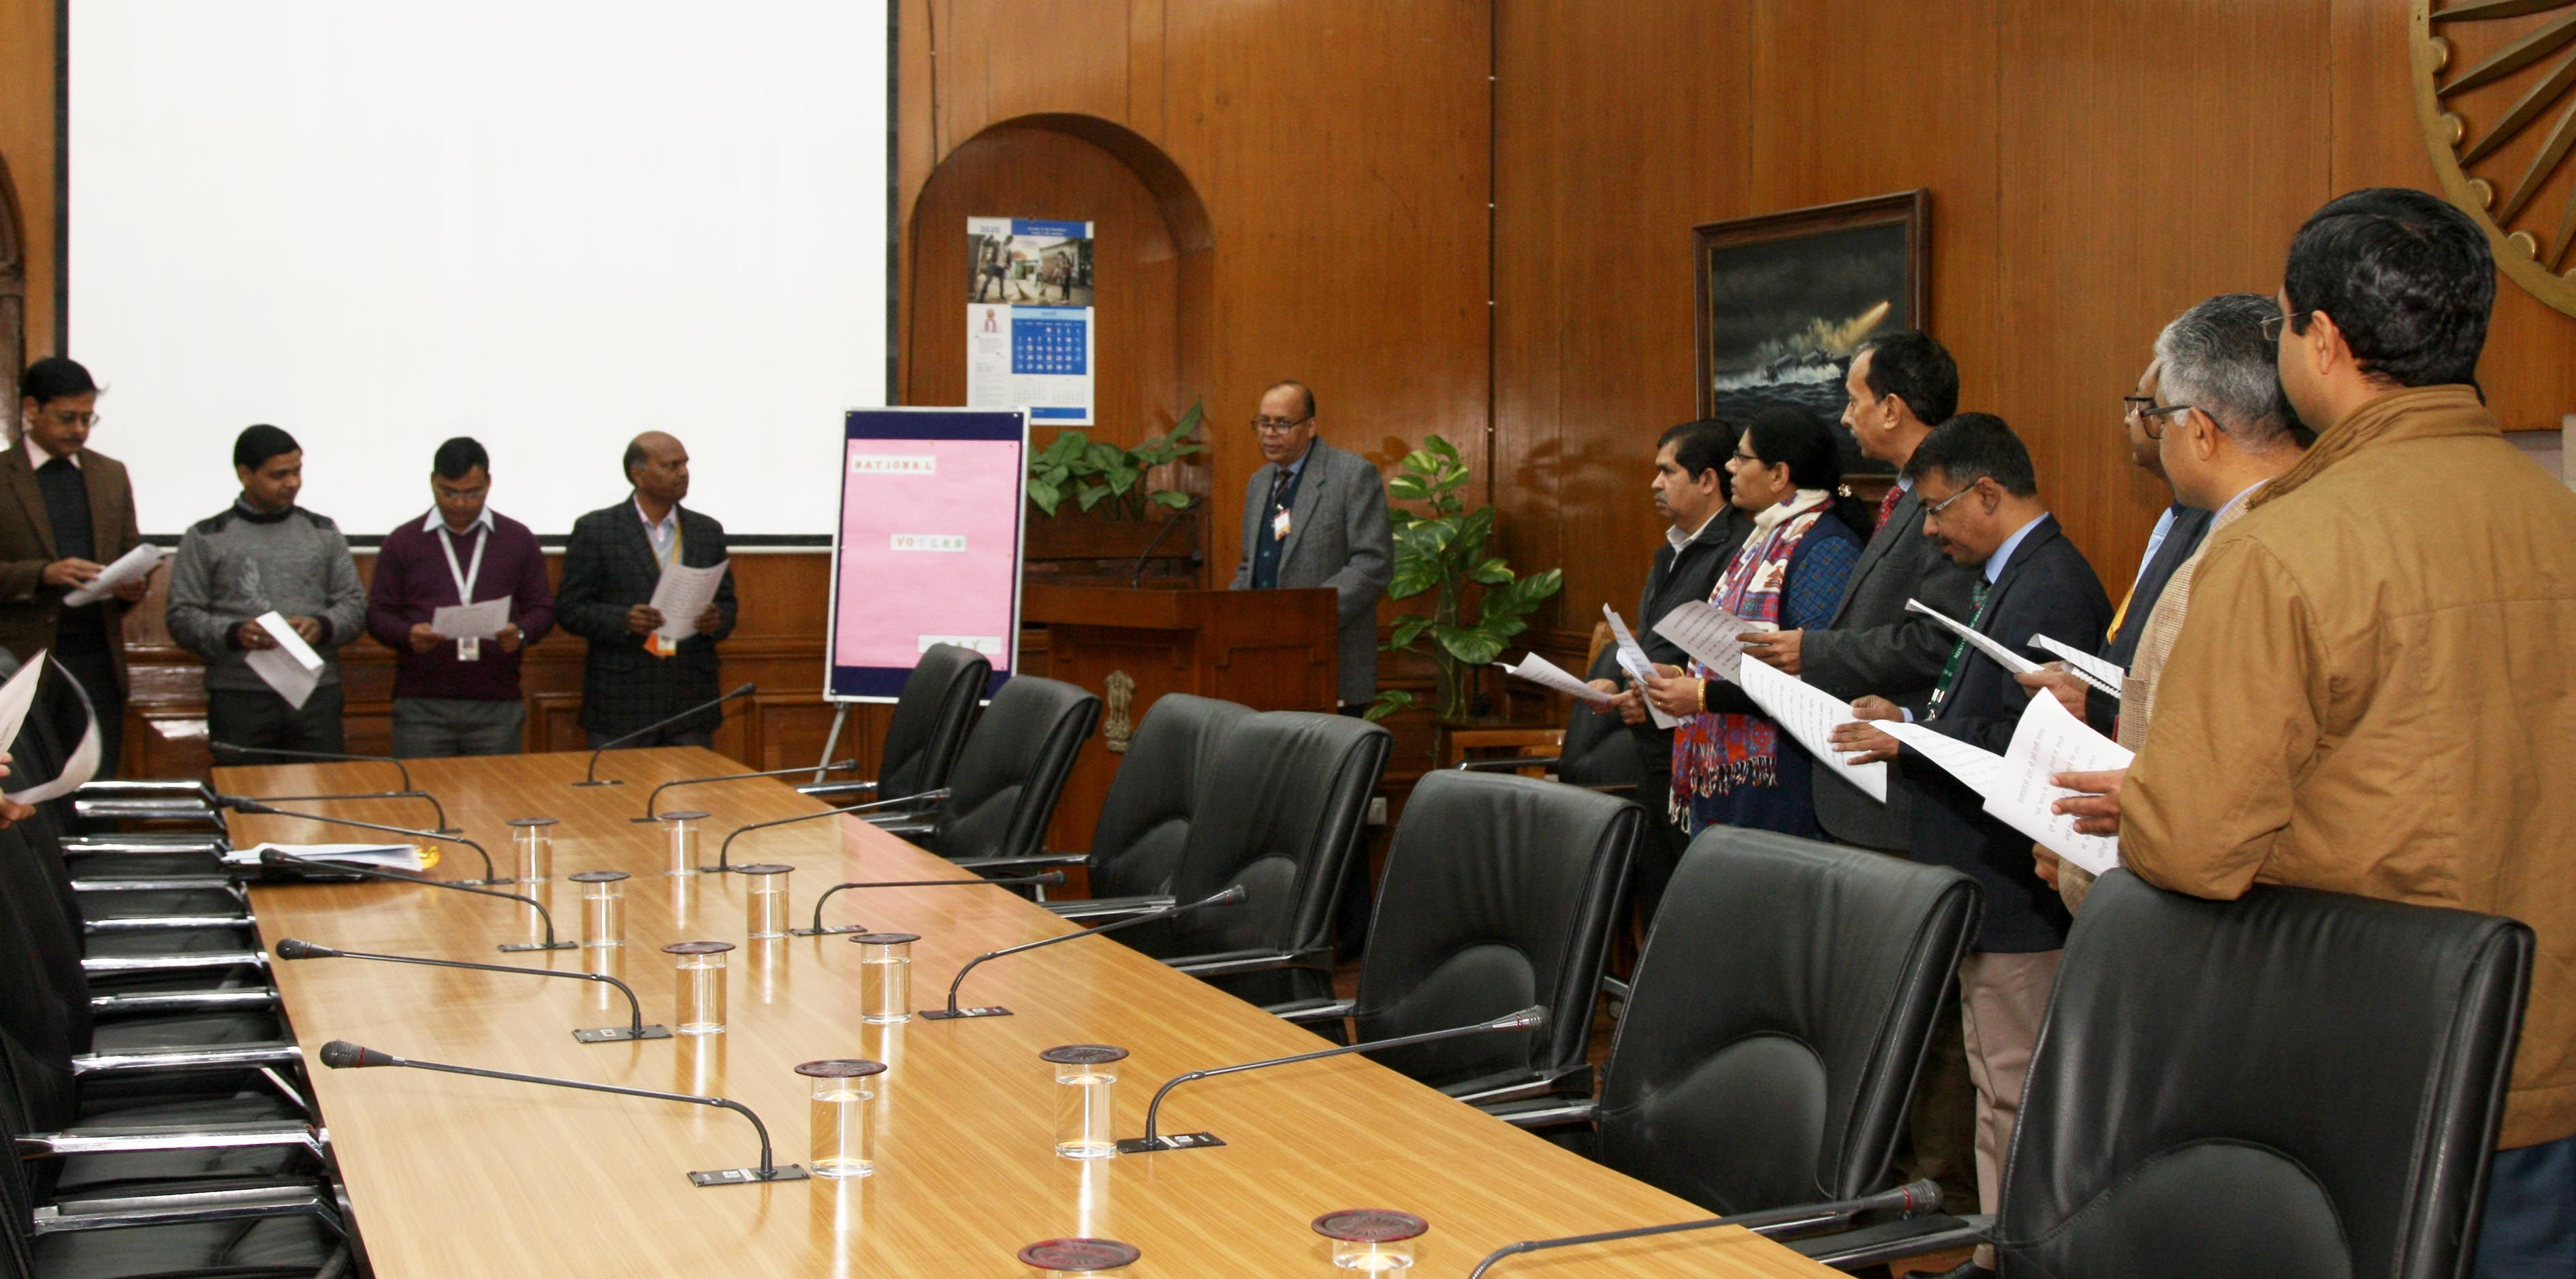 NVD Pledge by MOD officers  & Staff-3.JPG